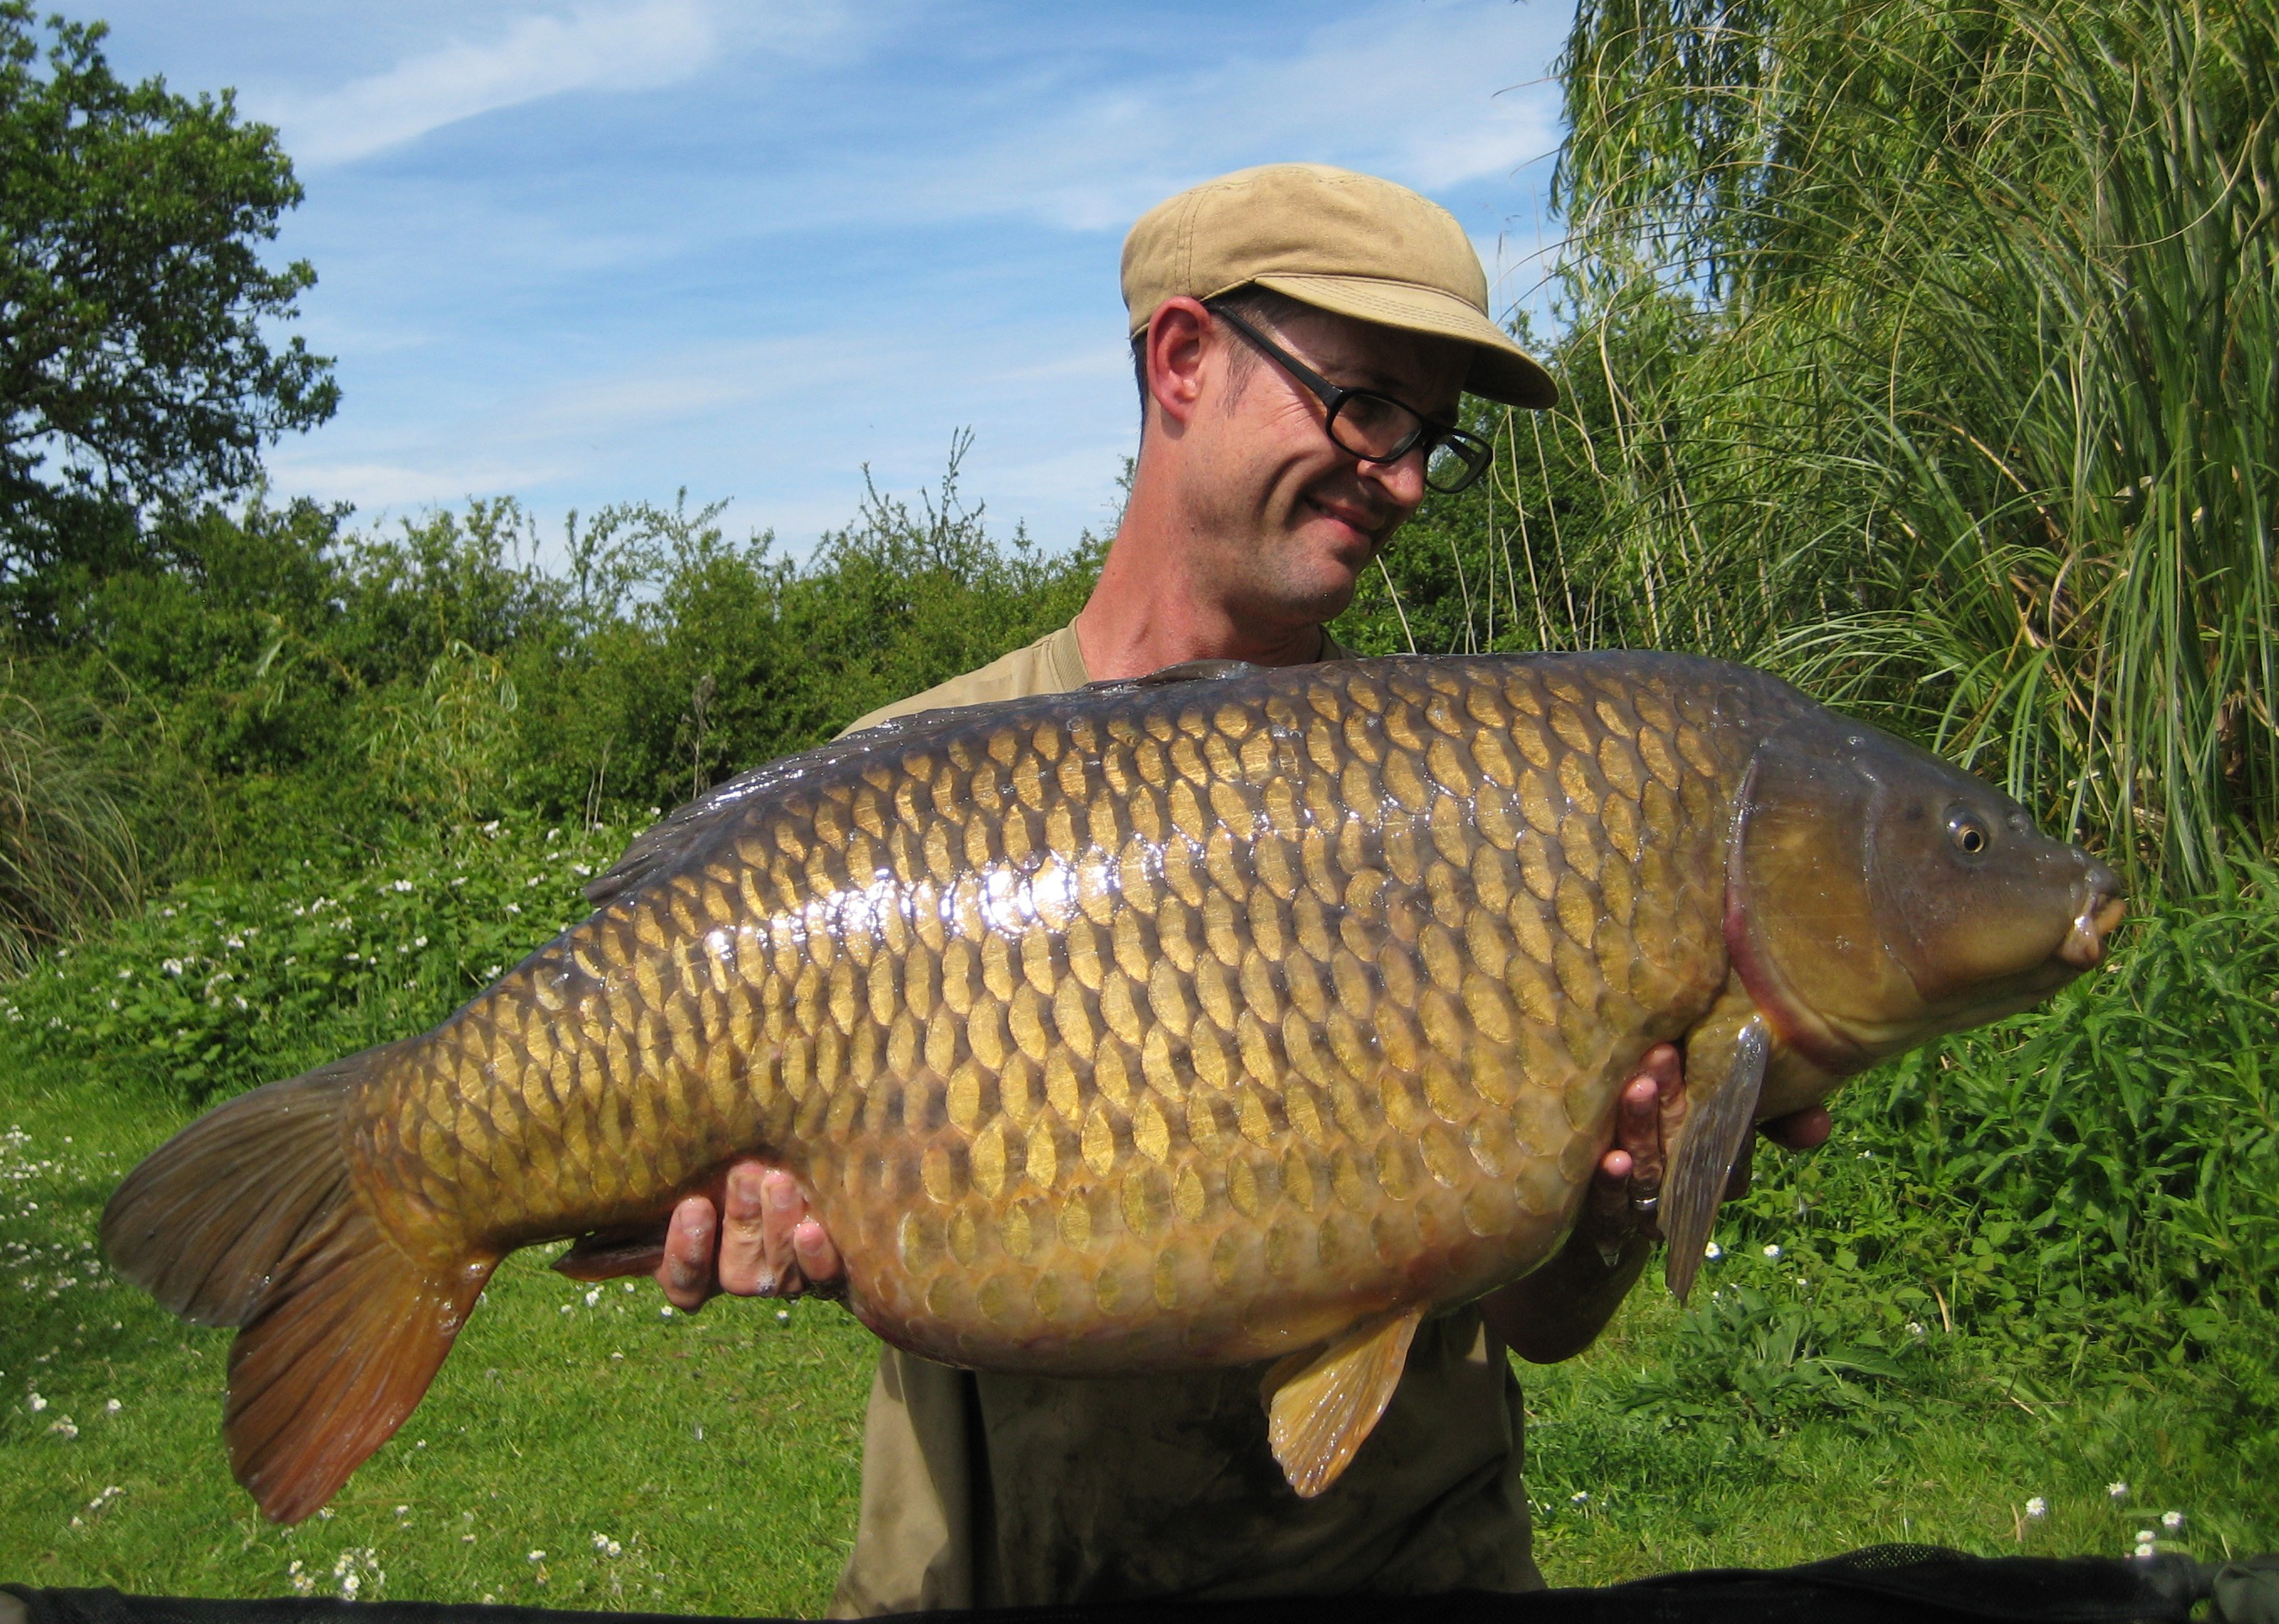 fryerning nick marsh carp